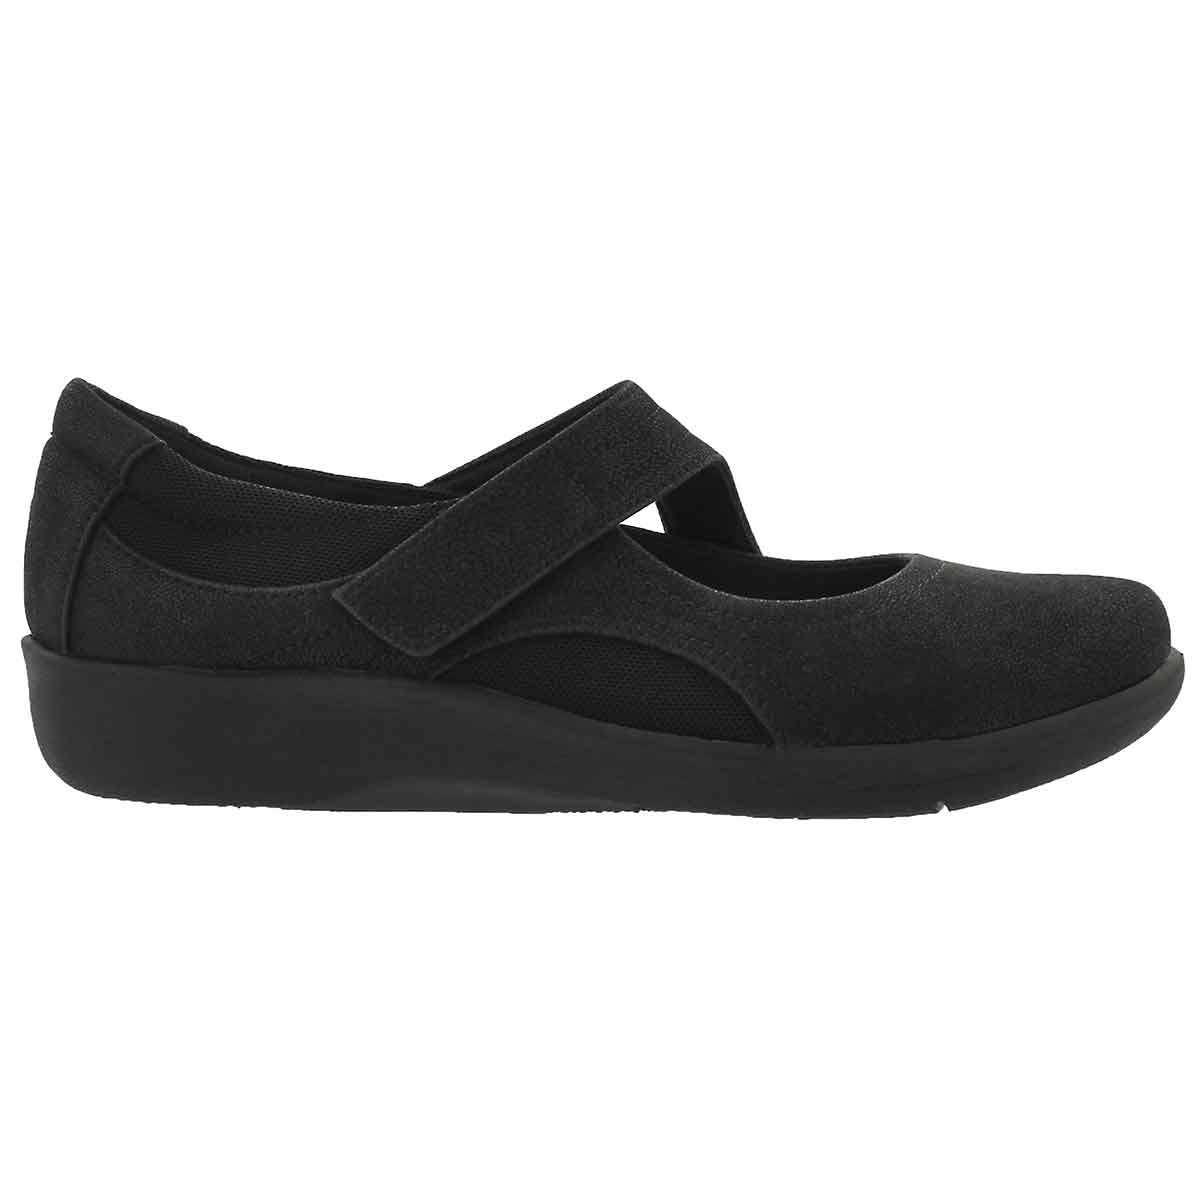 Lds Sillian Bella blk casual mary jane